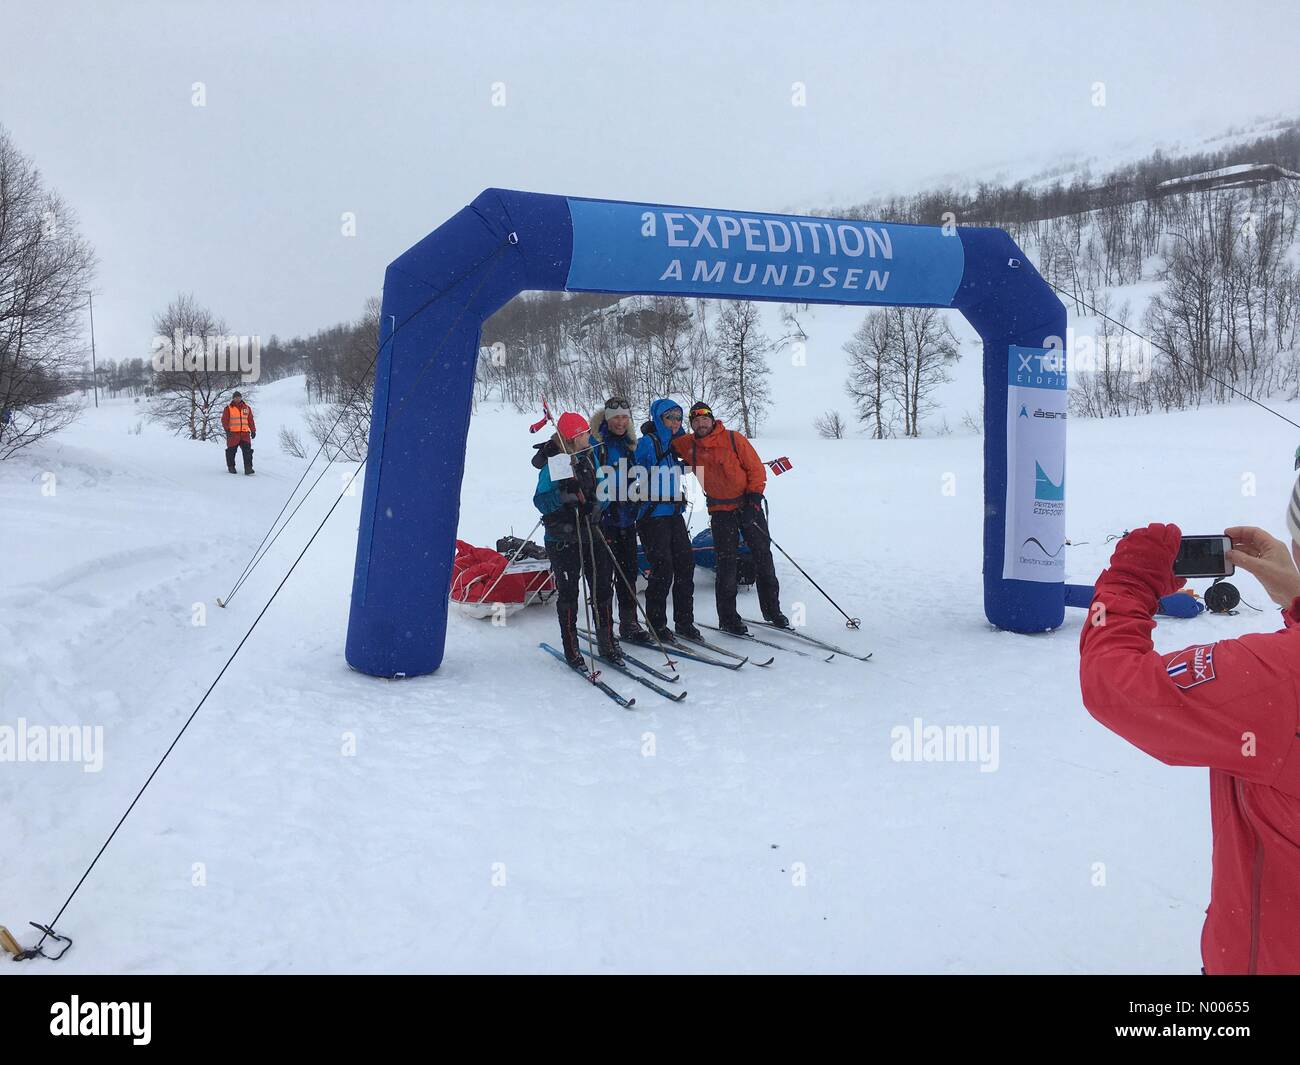 Rv7 190, Vøringsfoss, Norway. 27th Feb, 2016. The last teams finishing in the 2016 version of Expedition Amundsen, Stock Photo